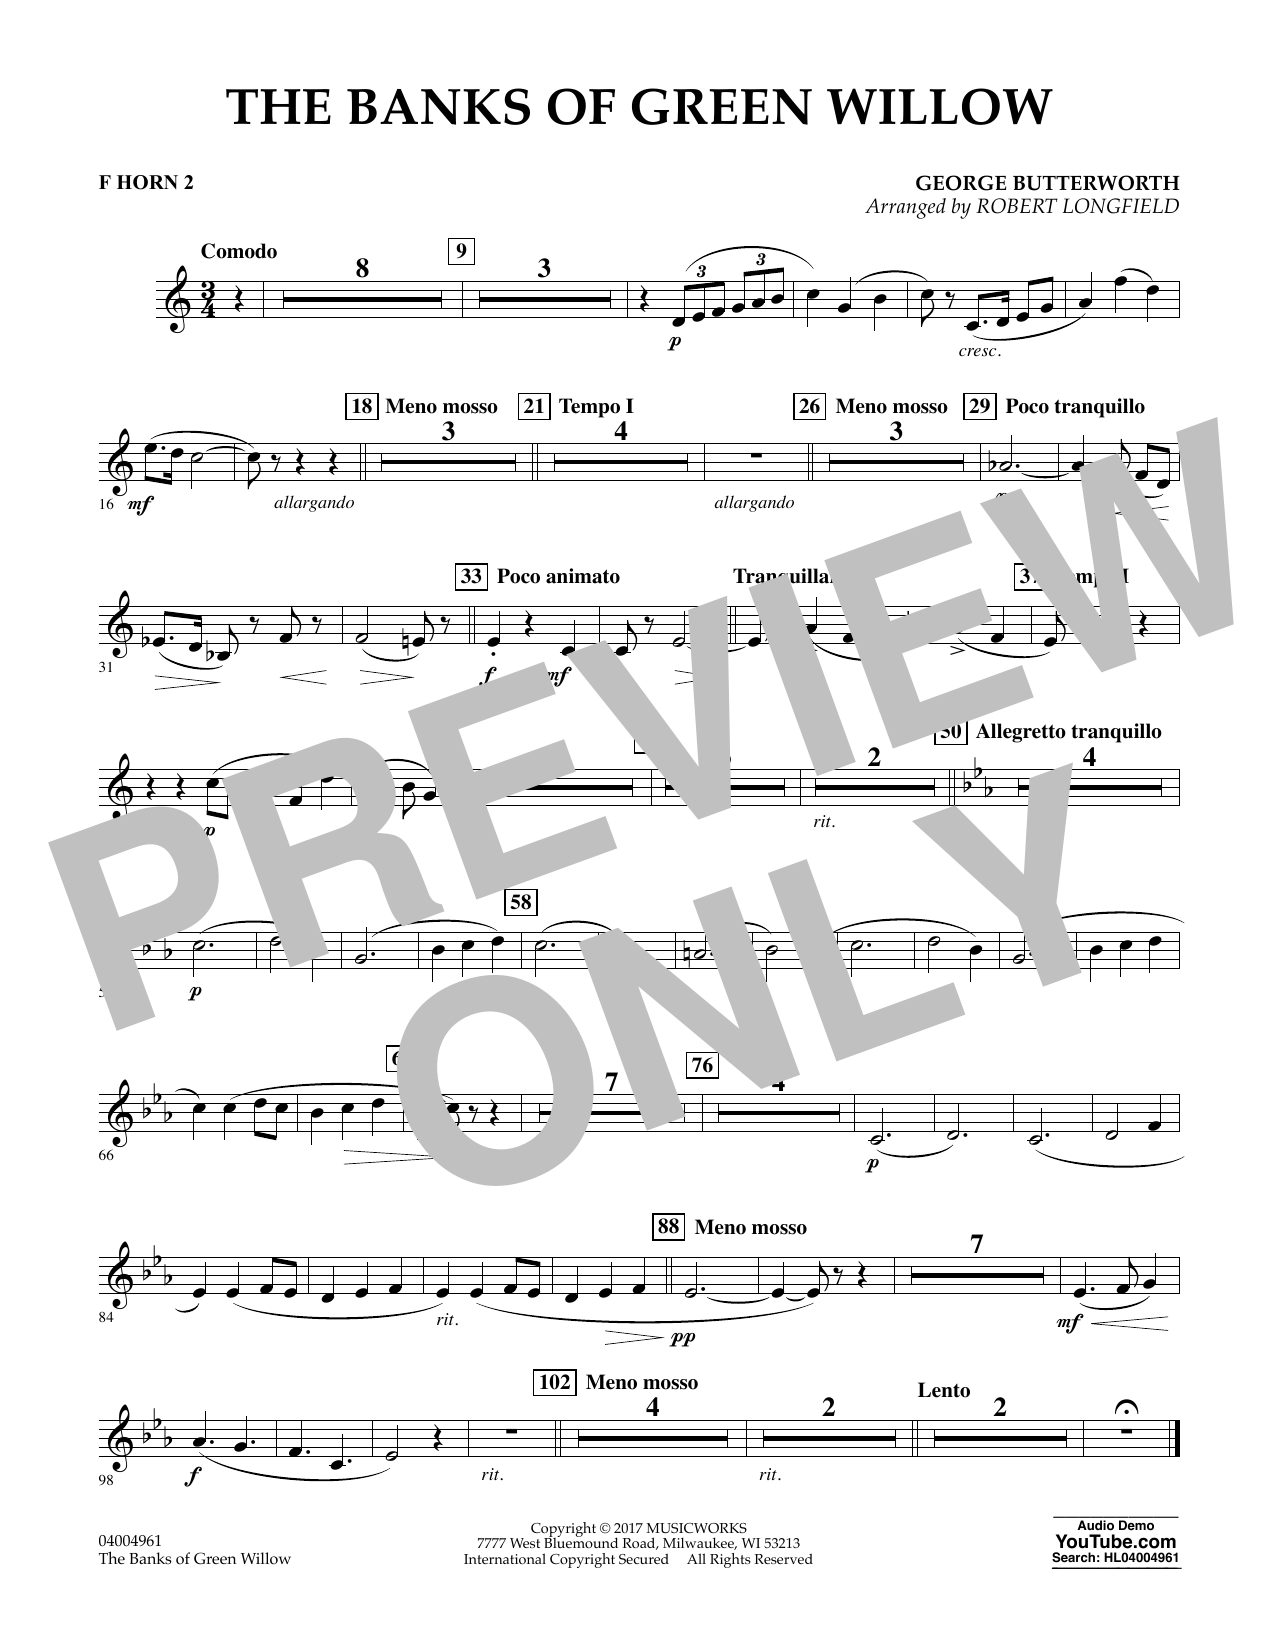 The Banks of Green Willow - F Horn 2 Sheet Music